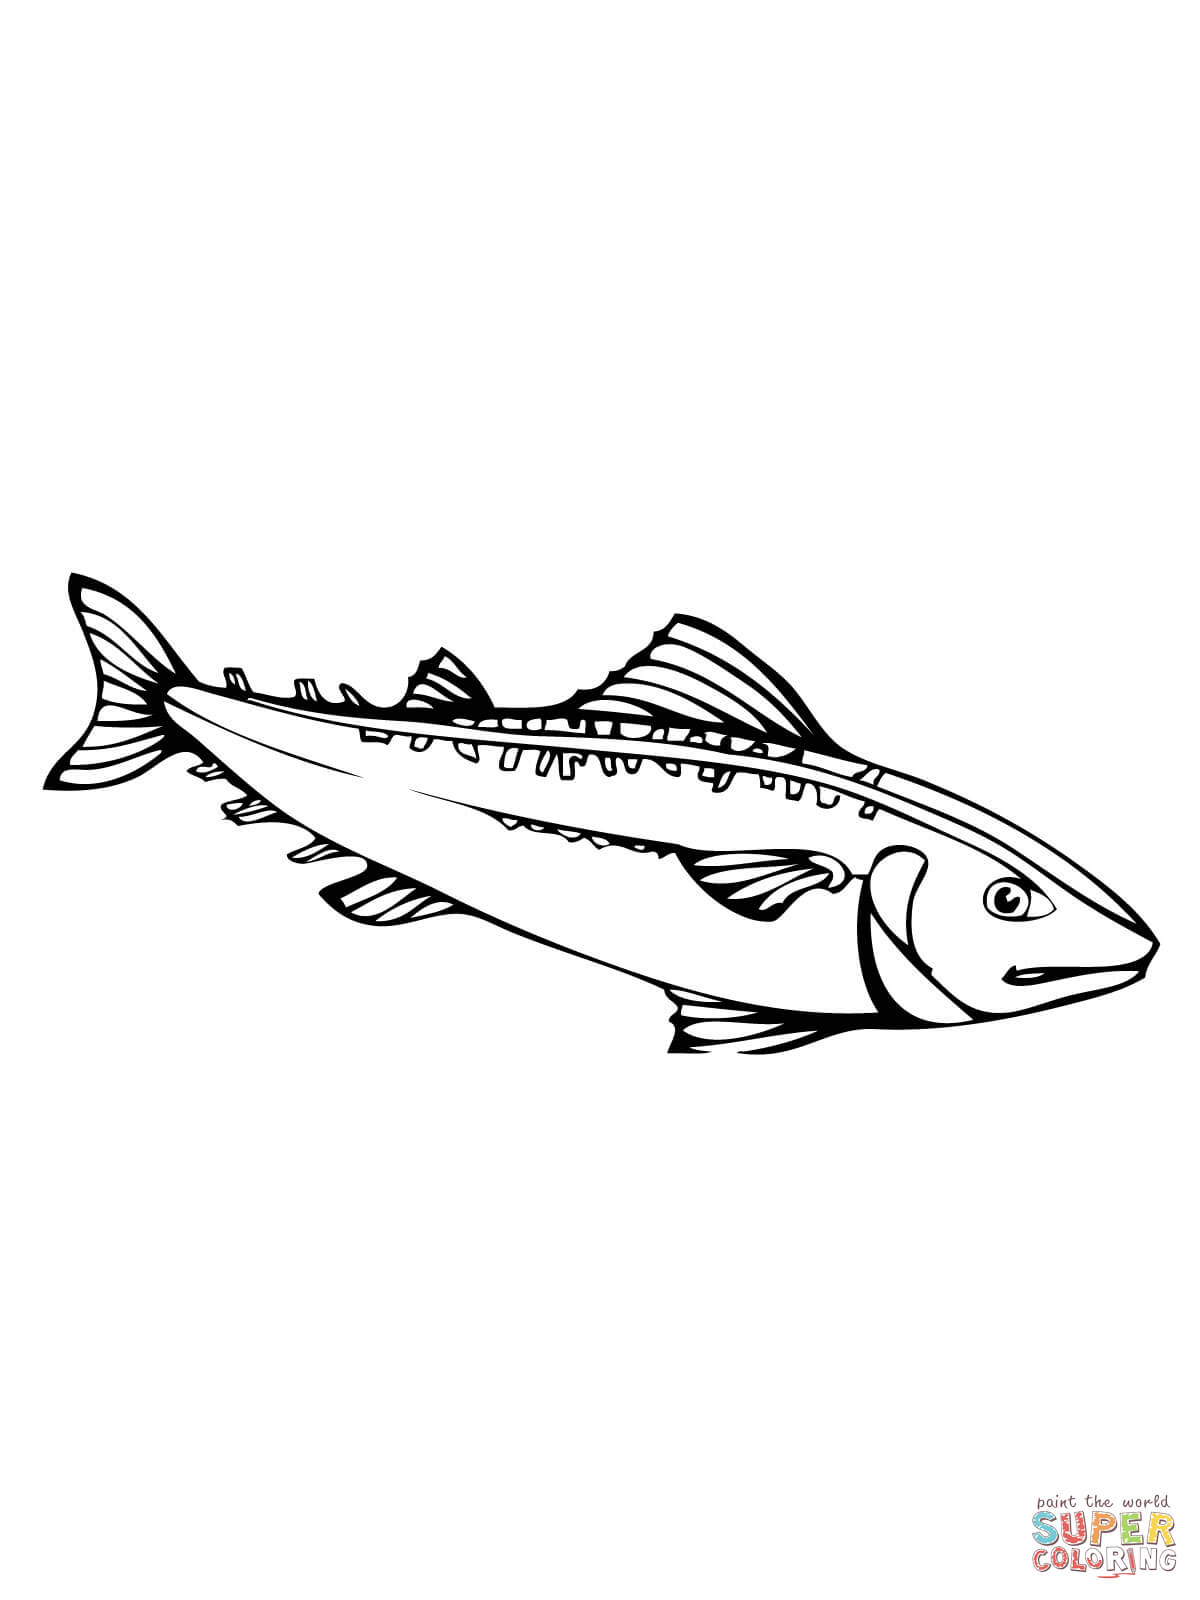 Mackerel Fish Coloring Page Free Printable Coloring Pages